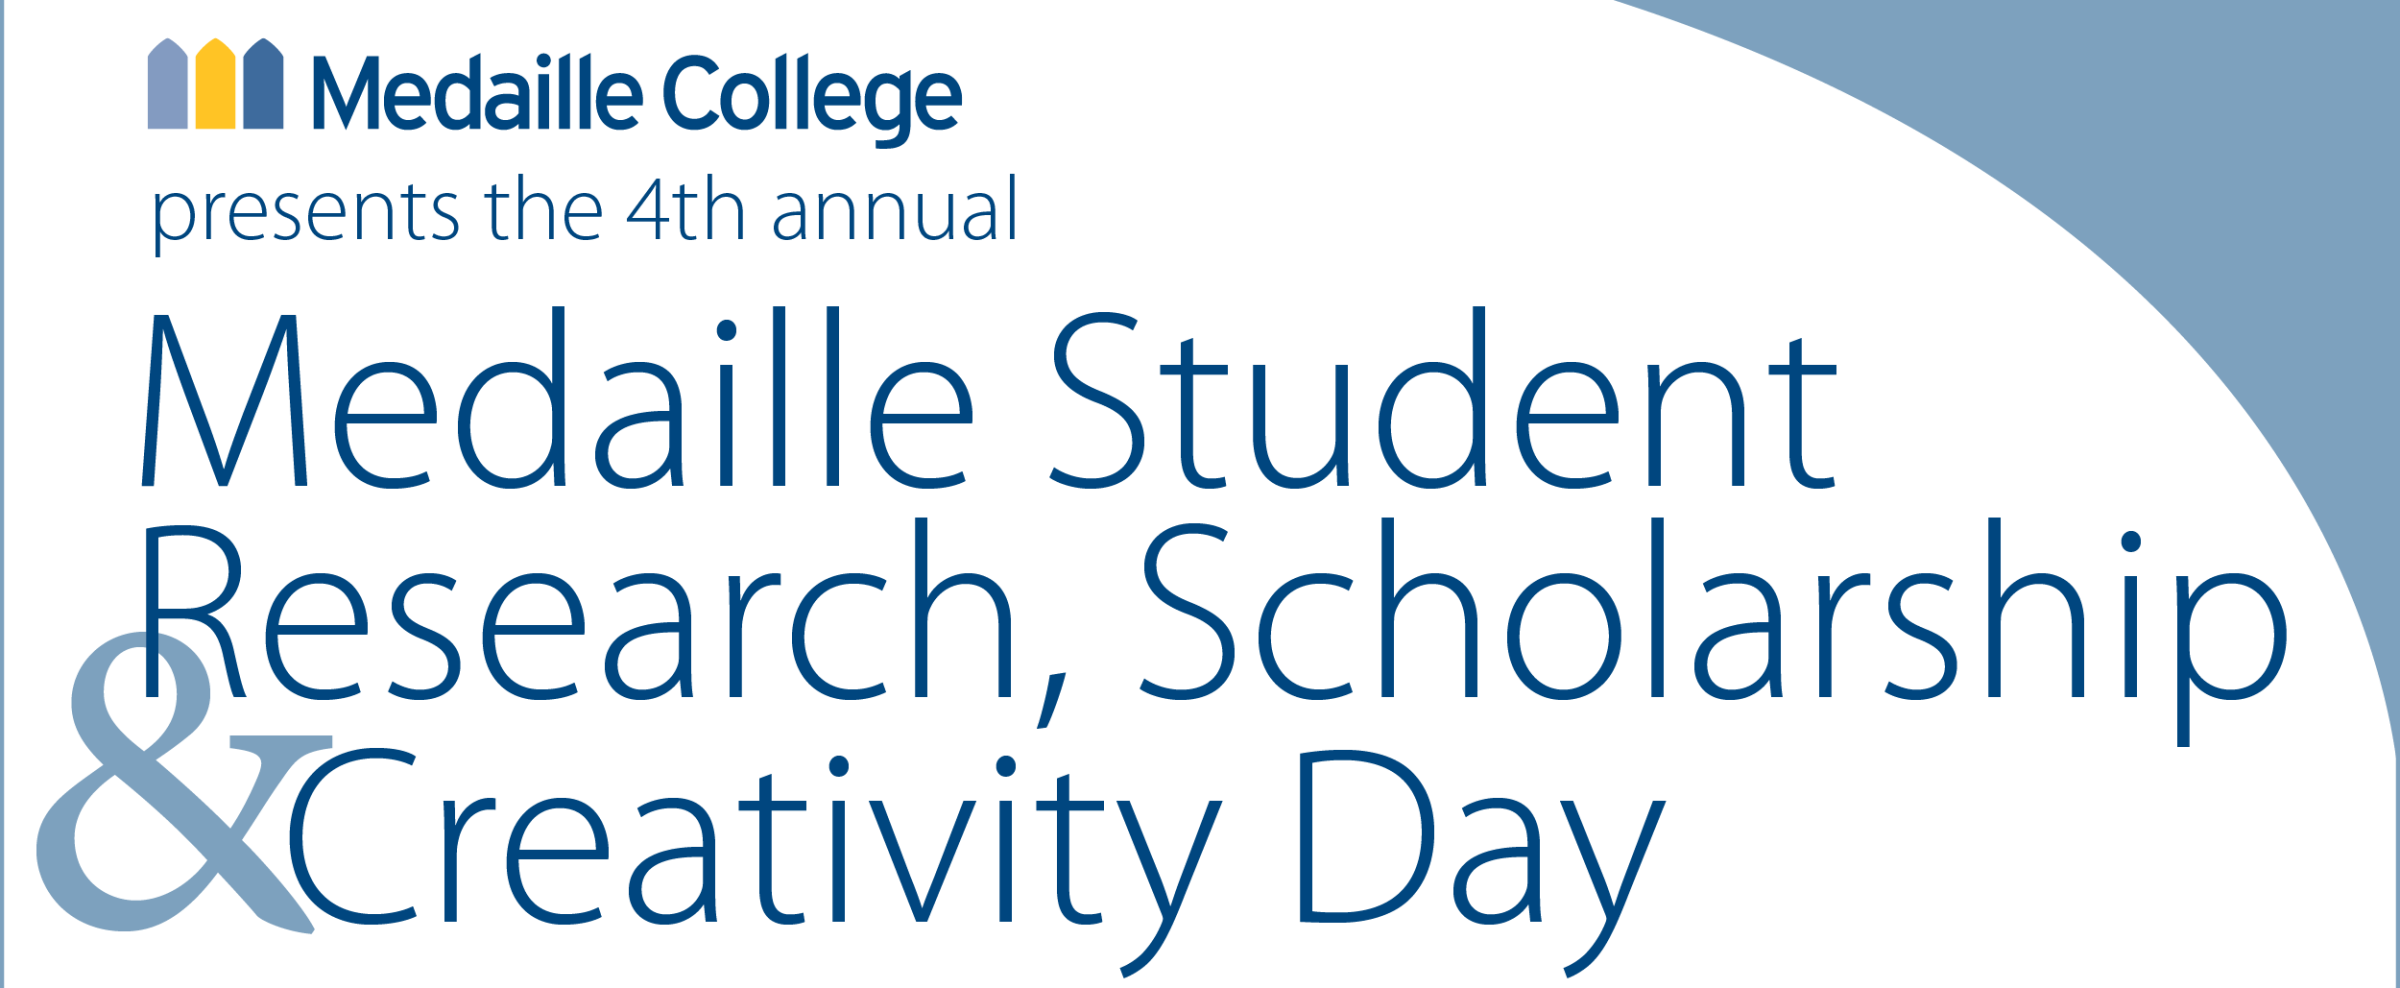 Fourth Annual Student Research, Scholarship & Creativity Day